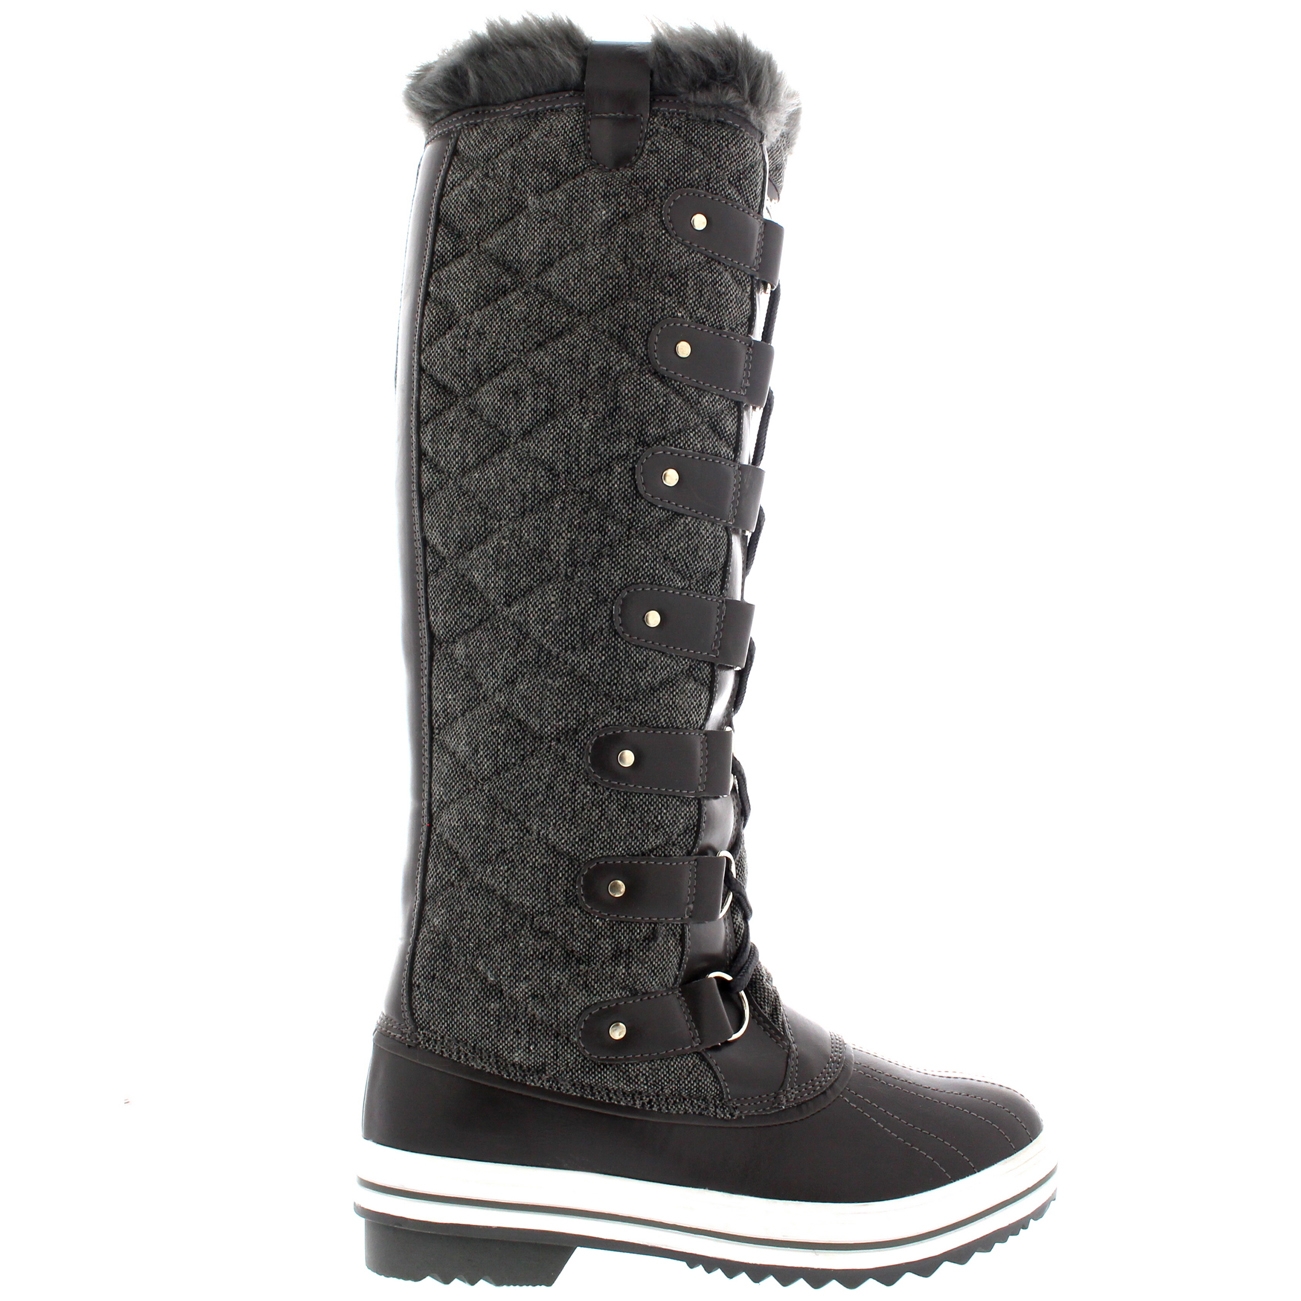 quilted fur lined duck muck winter snow knee